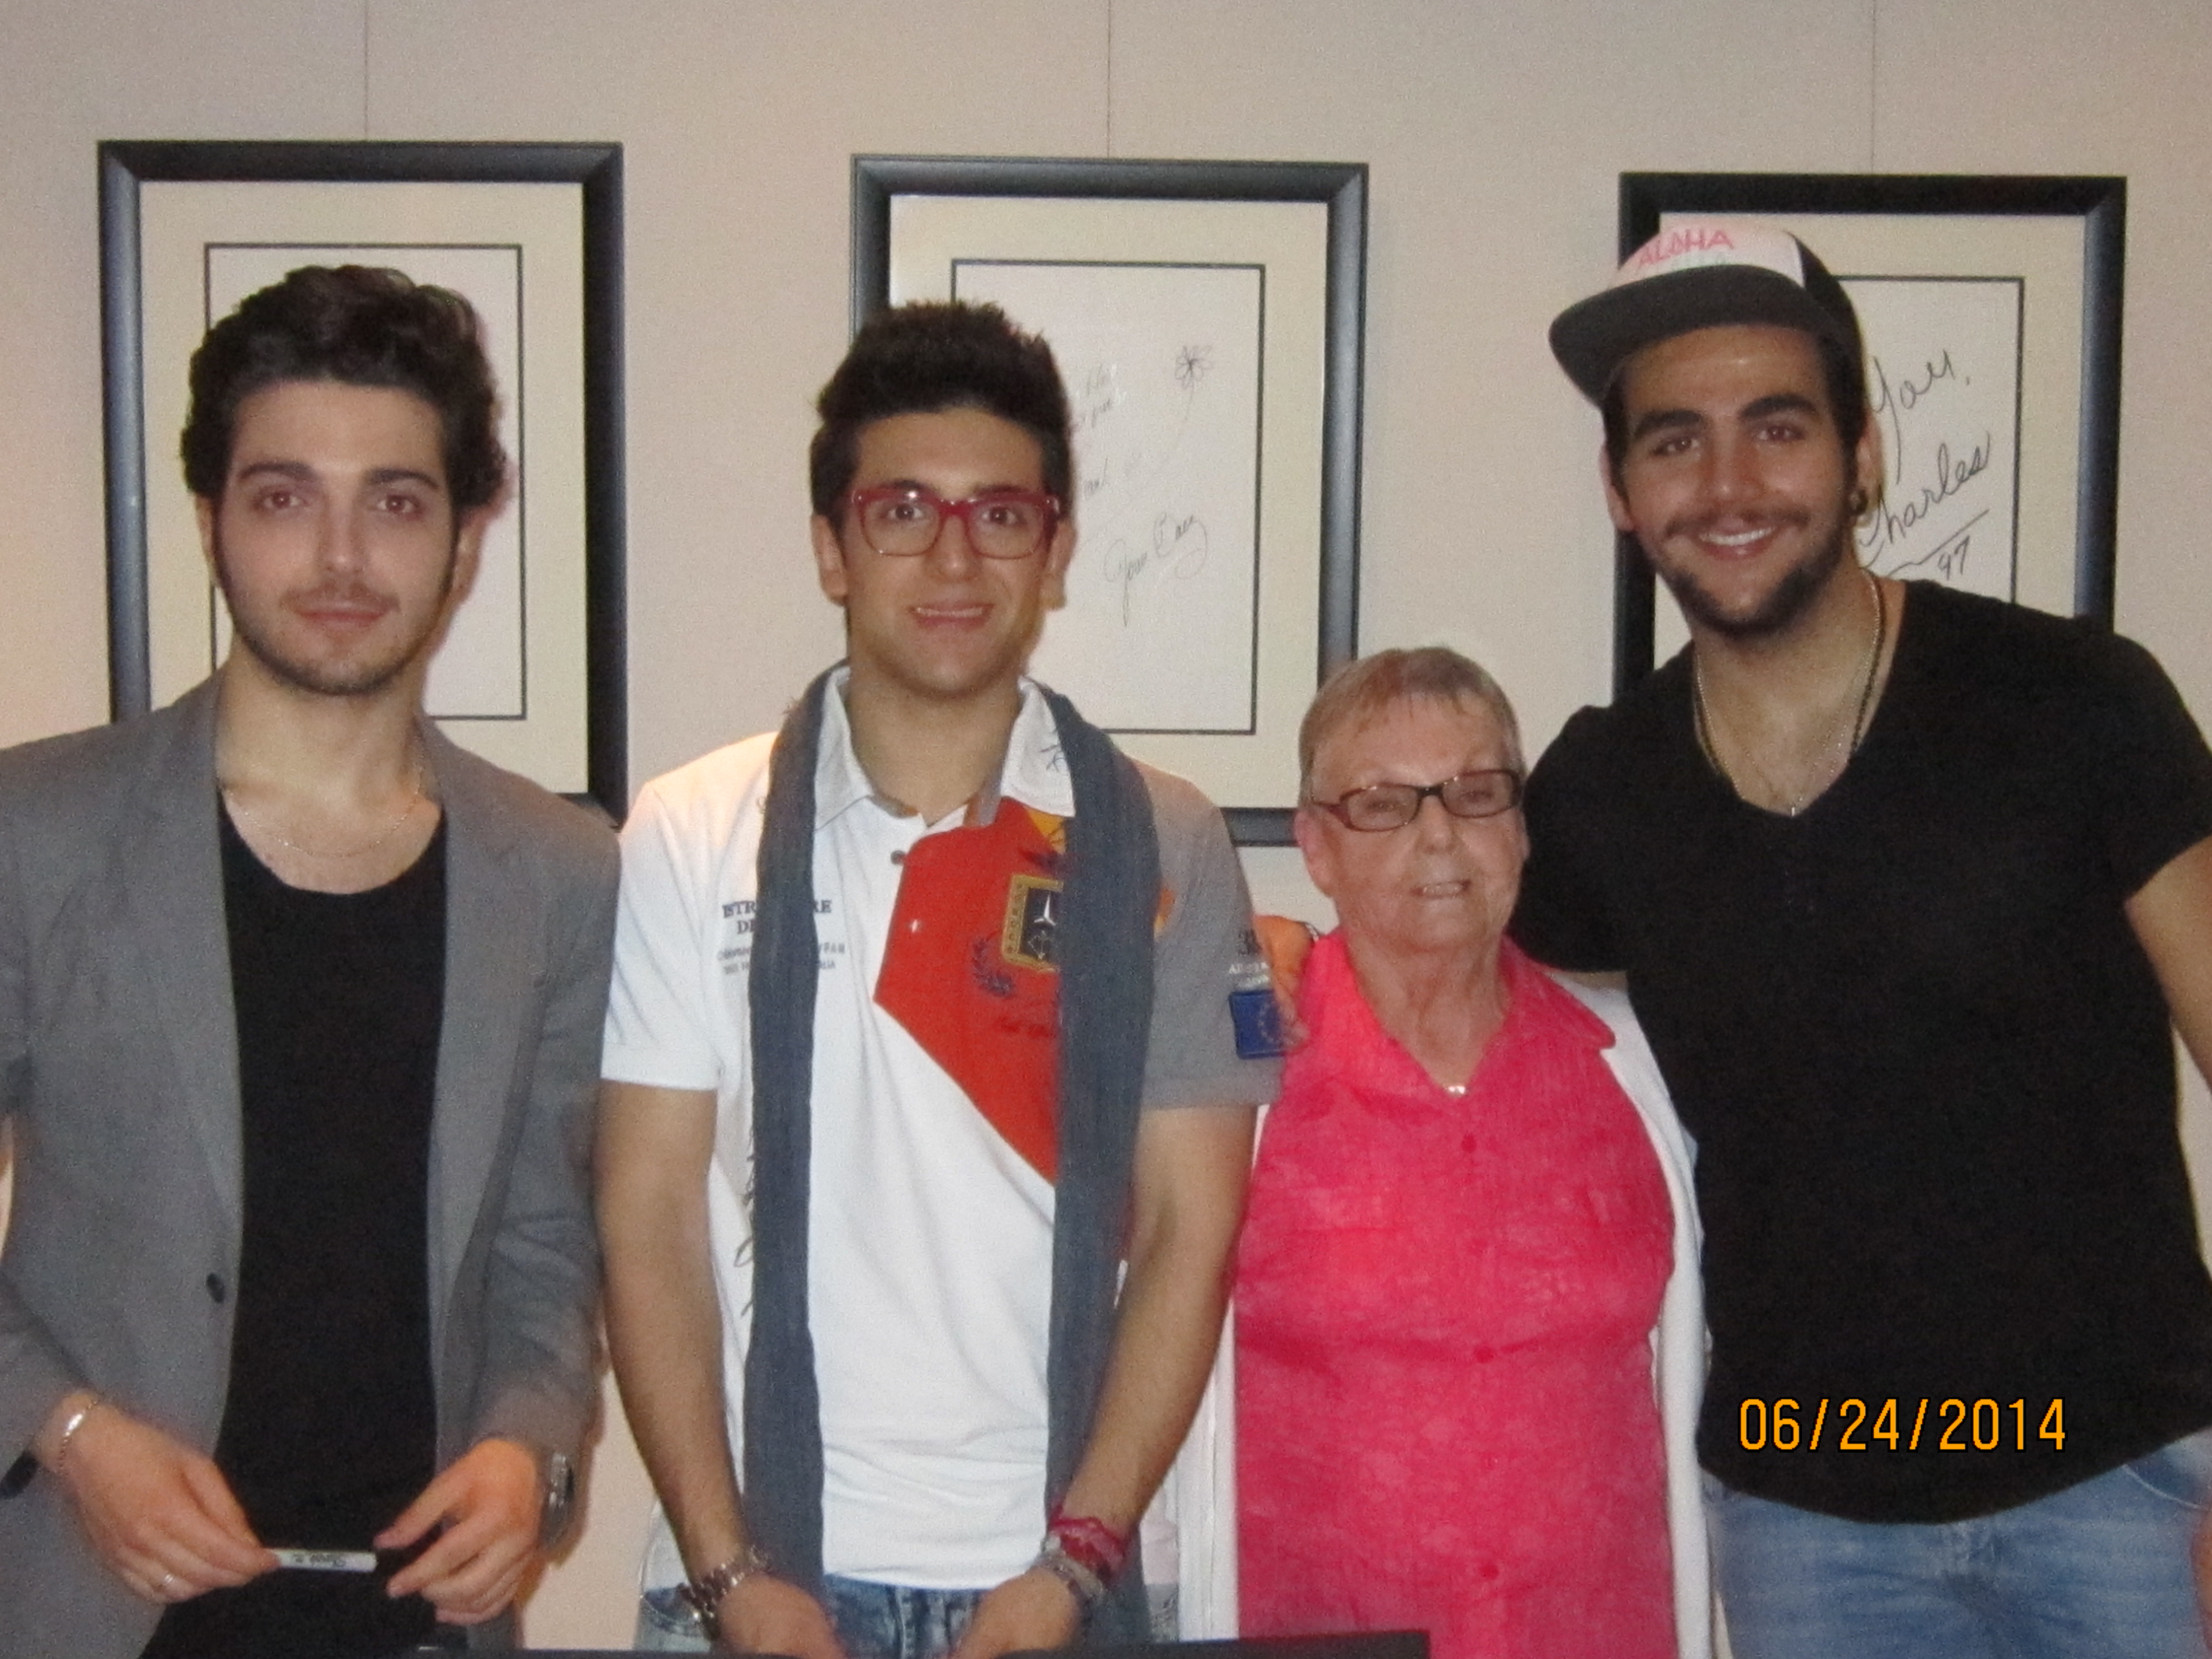 Meet and greet il volo flight crew share the love no offense annie but if i had a granddaughter that looked like that i wouldnt take her with me to meet the boys look at gianluca m4hsunfo